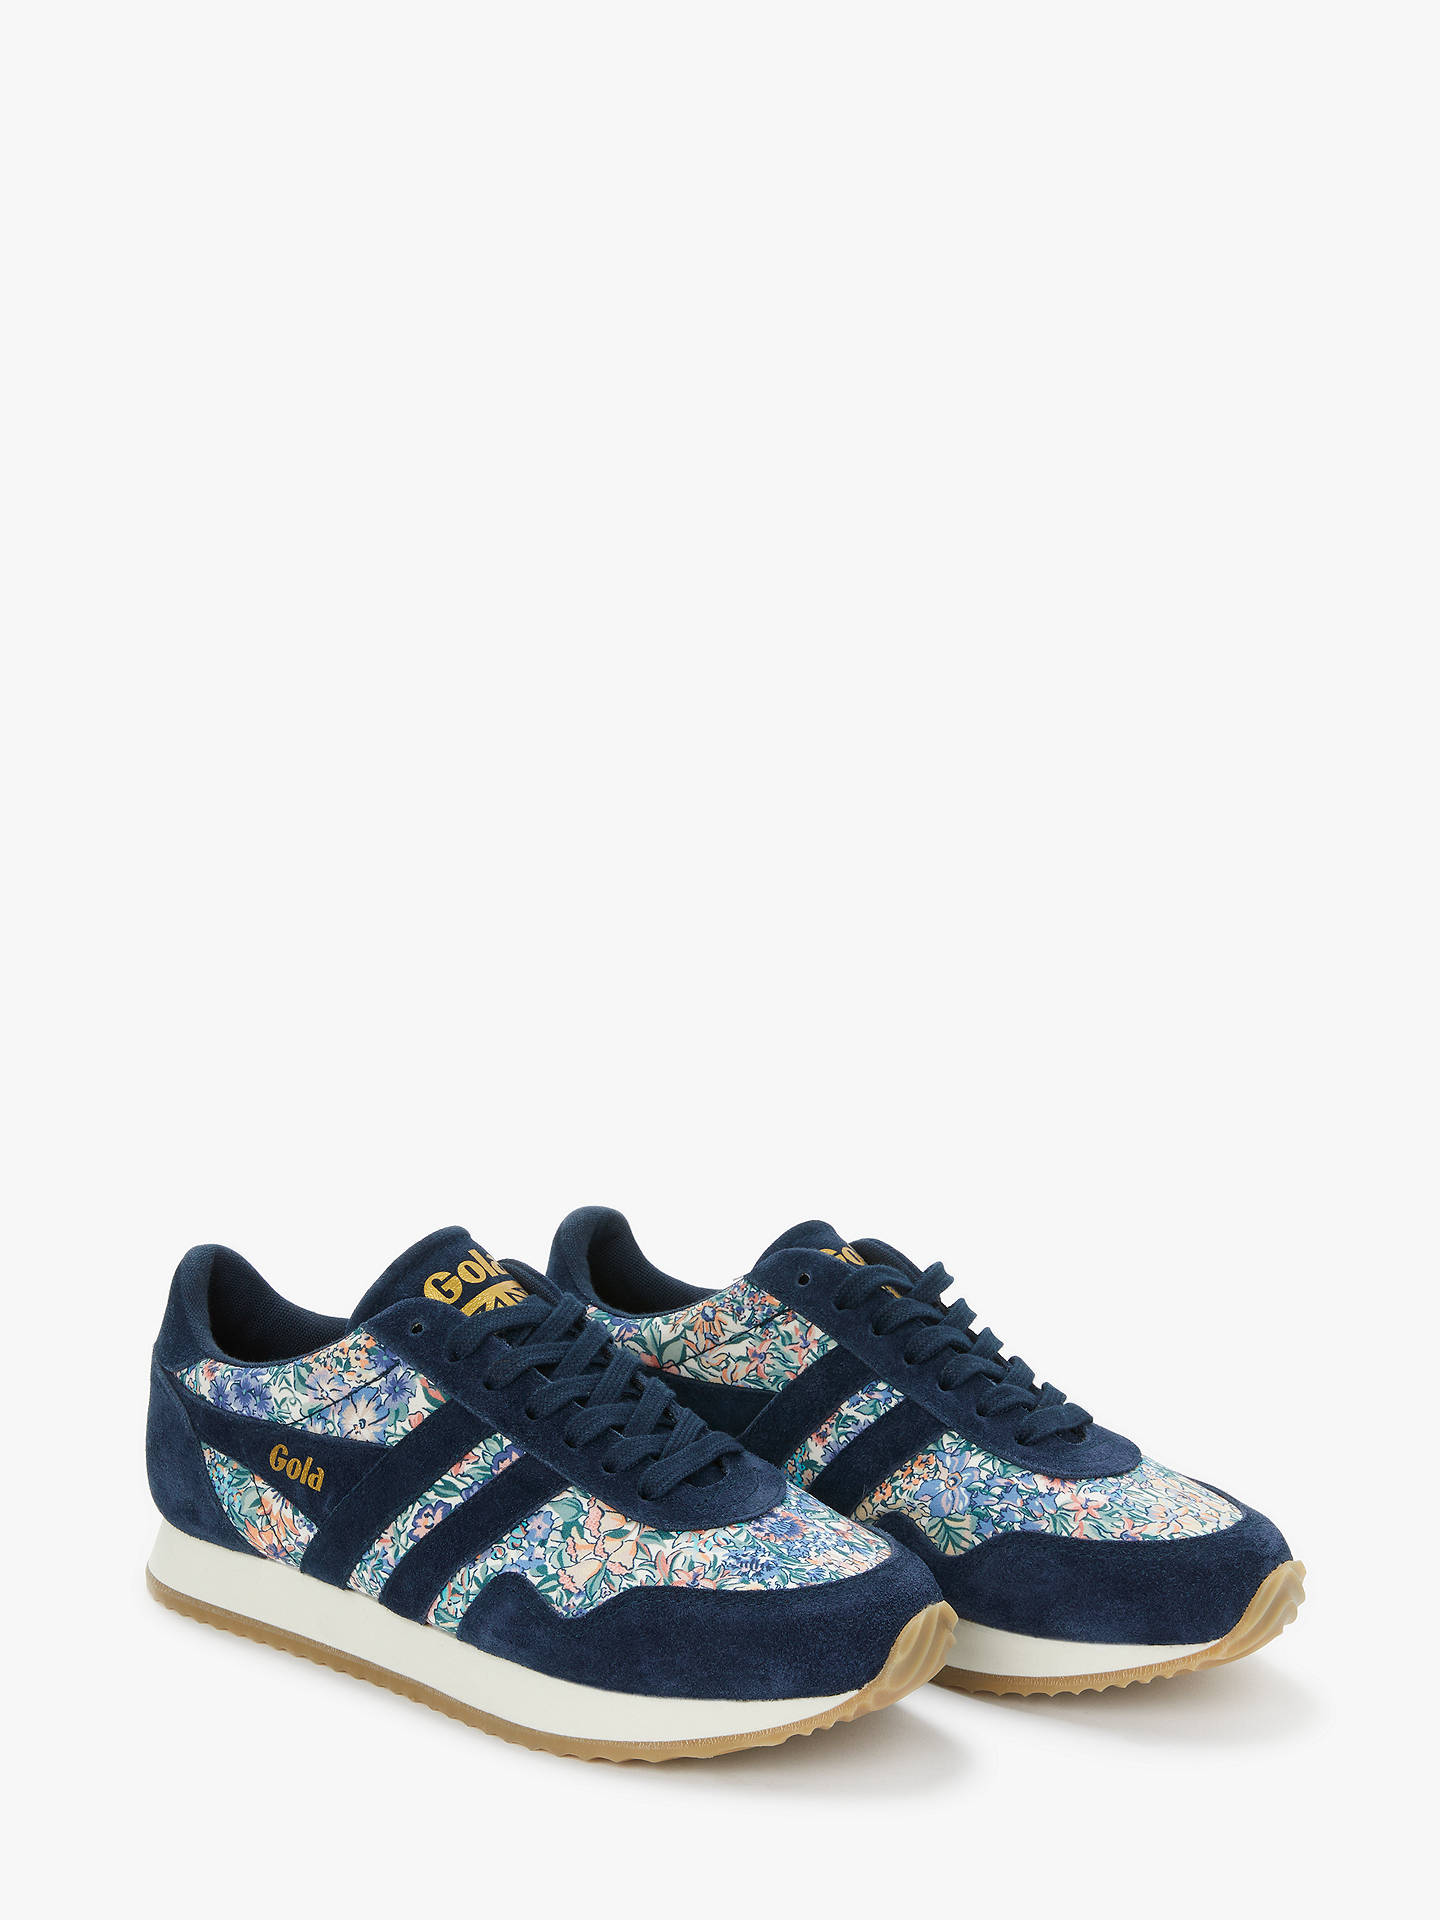 ... BuyGola Spirit Liberty Lace Up Trainers a63f813a2